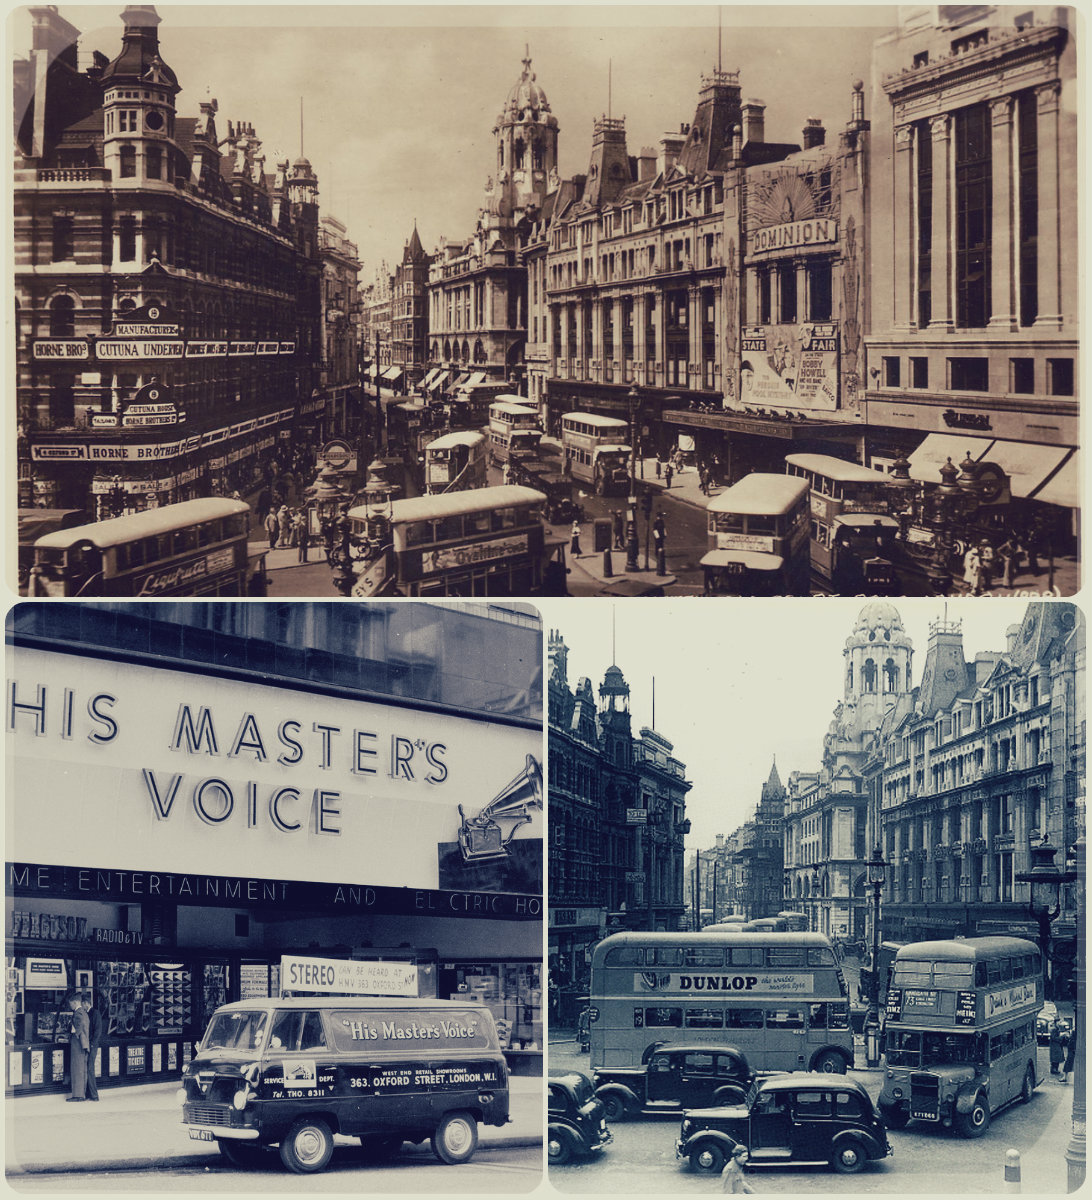 Tottenham Court Road and Oxford Street